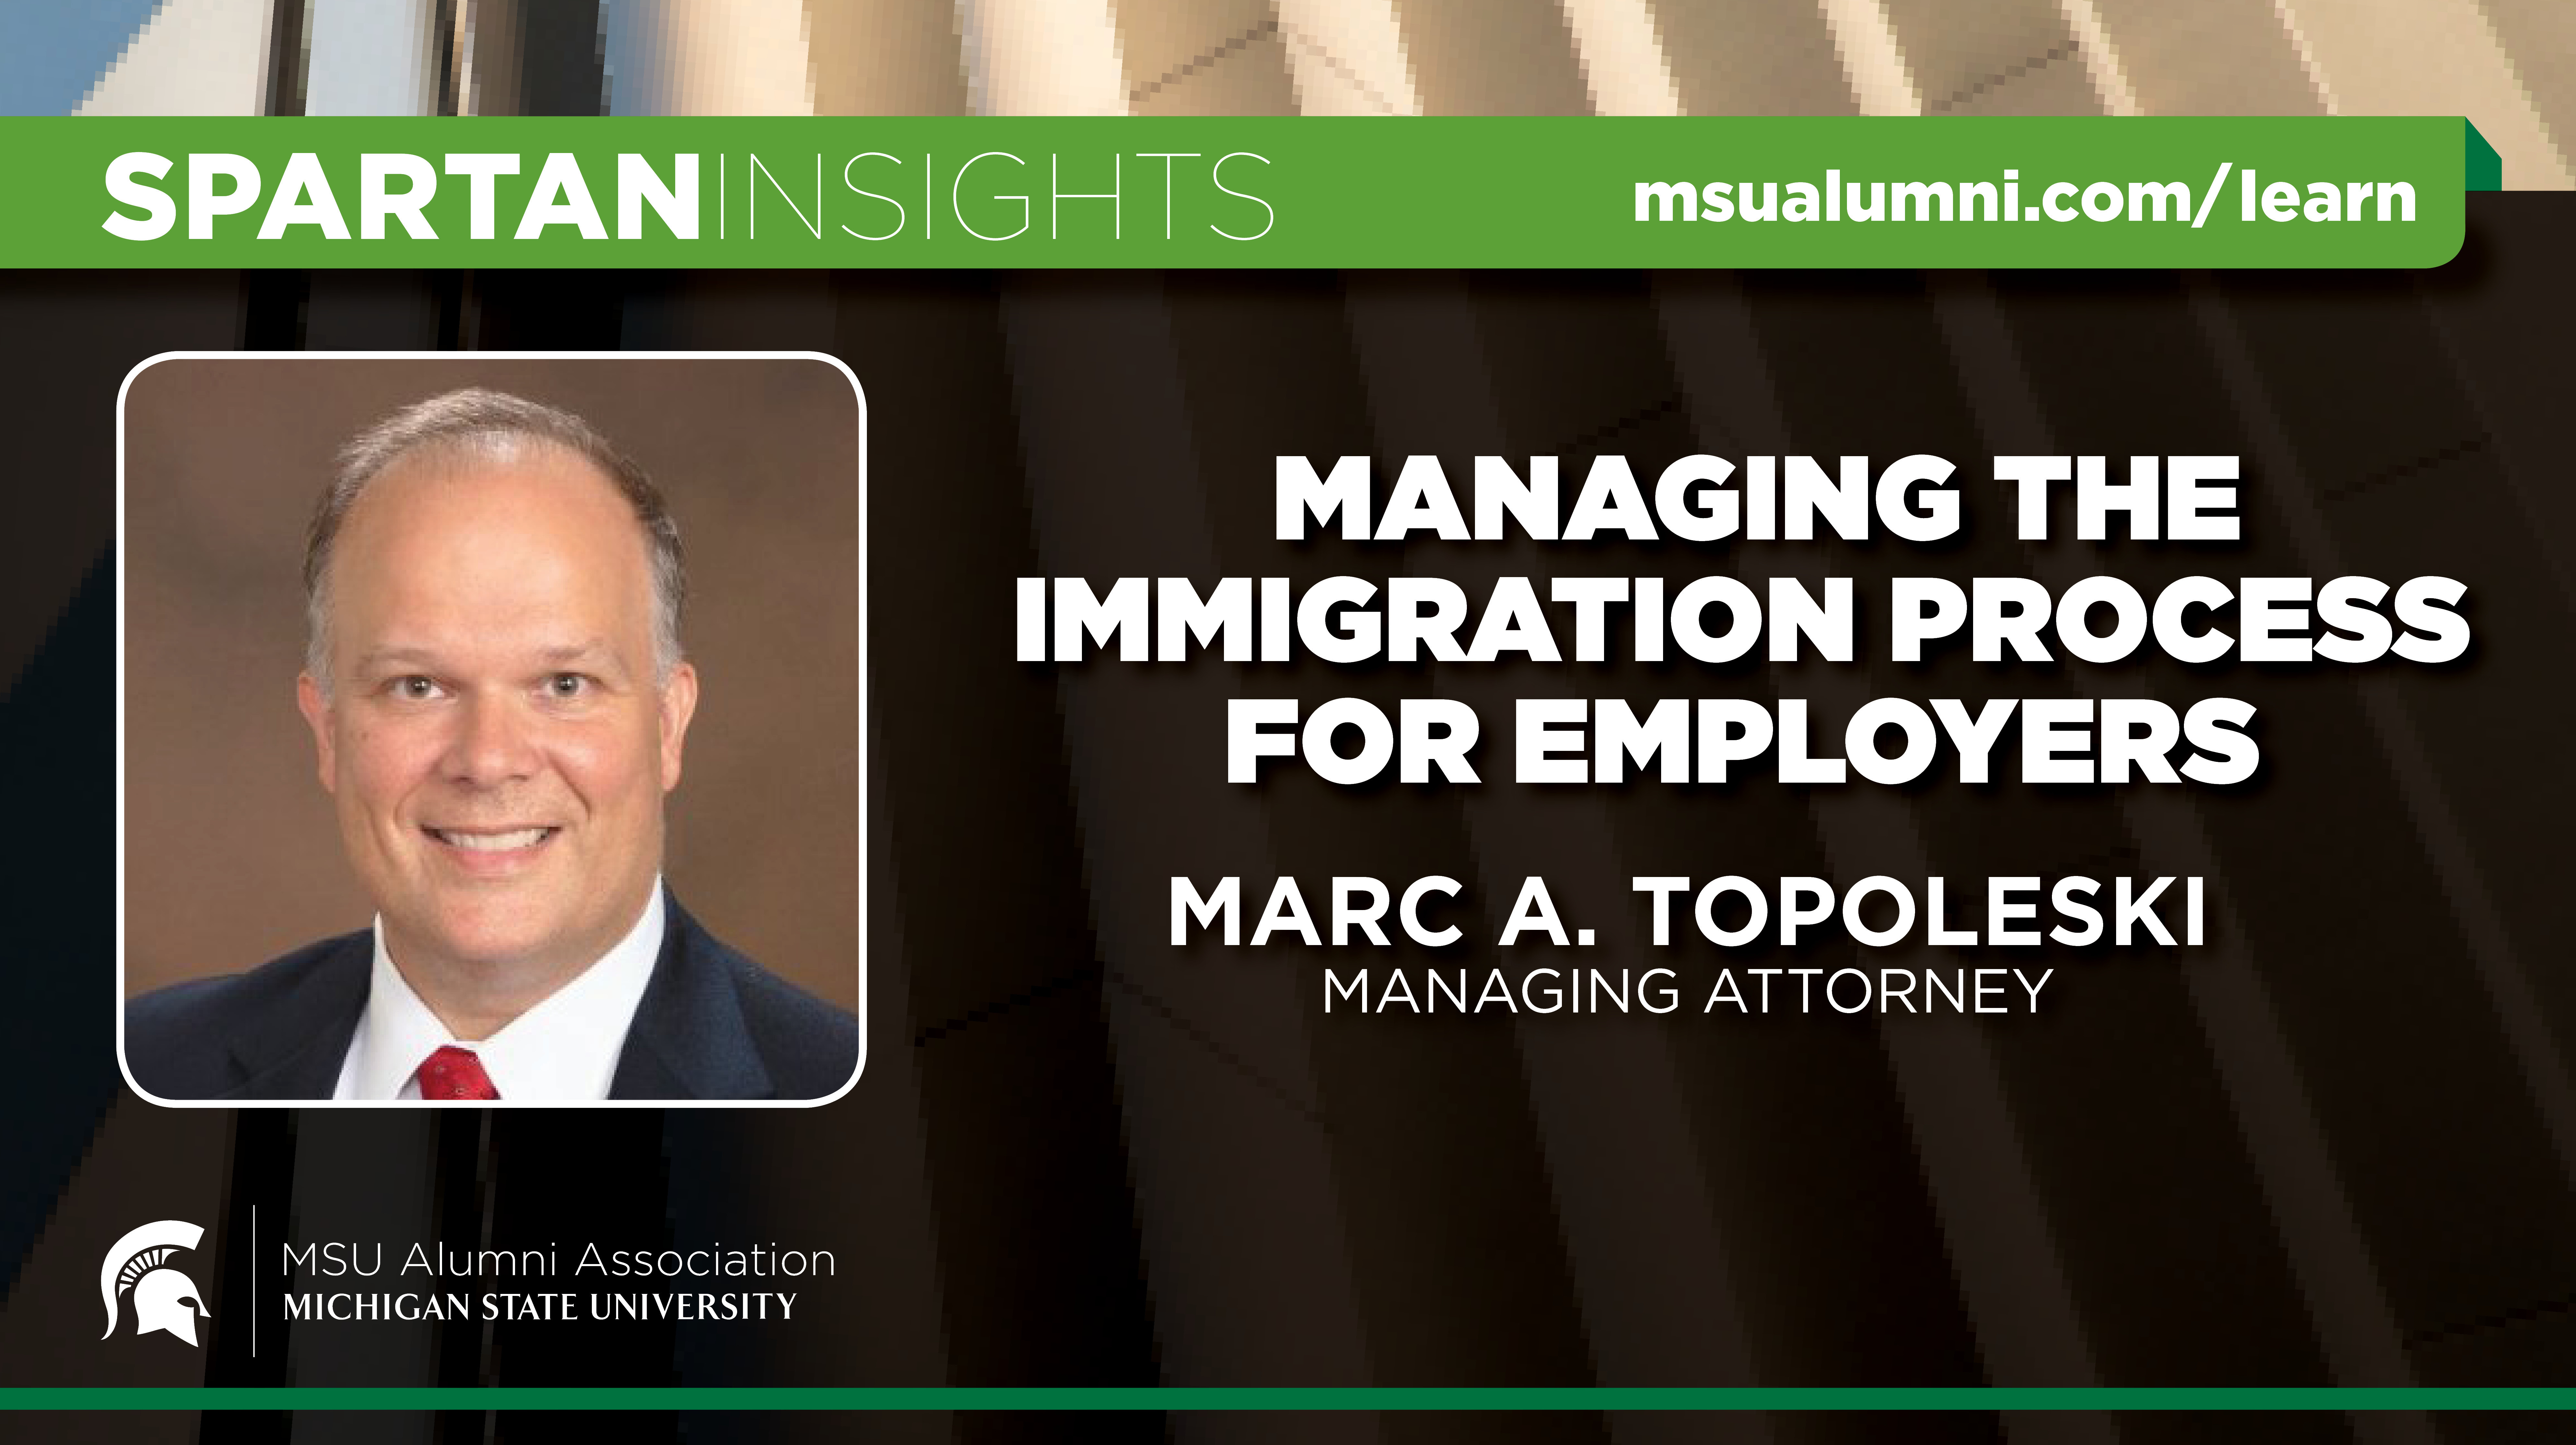 webinar cover image for Marc A. Topoleski | Managing The Immigration Process For Employers